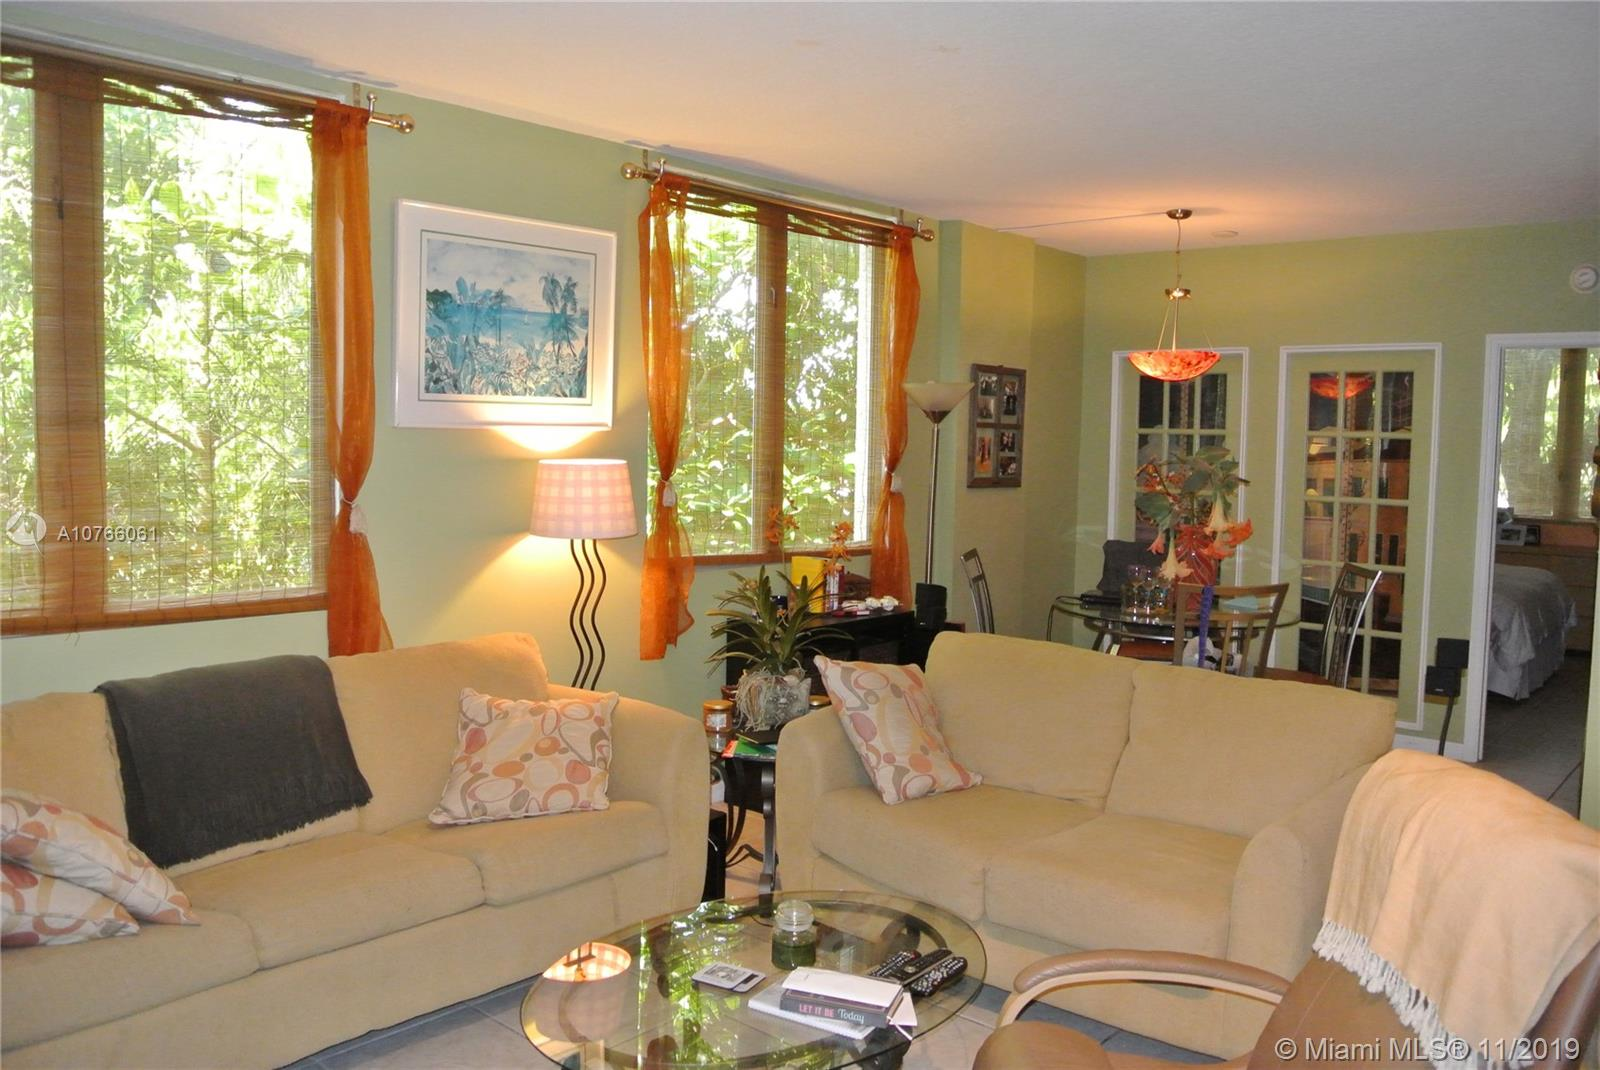 2630 S W 28 ST #1 For Sale A10766061, FL